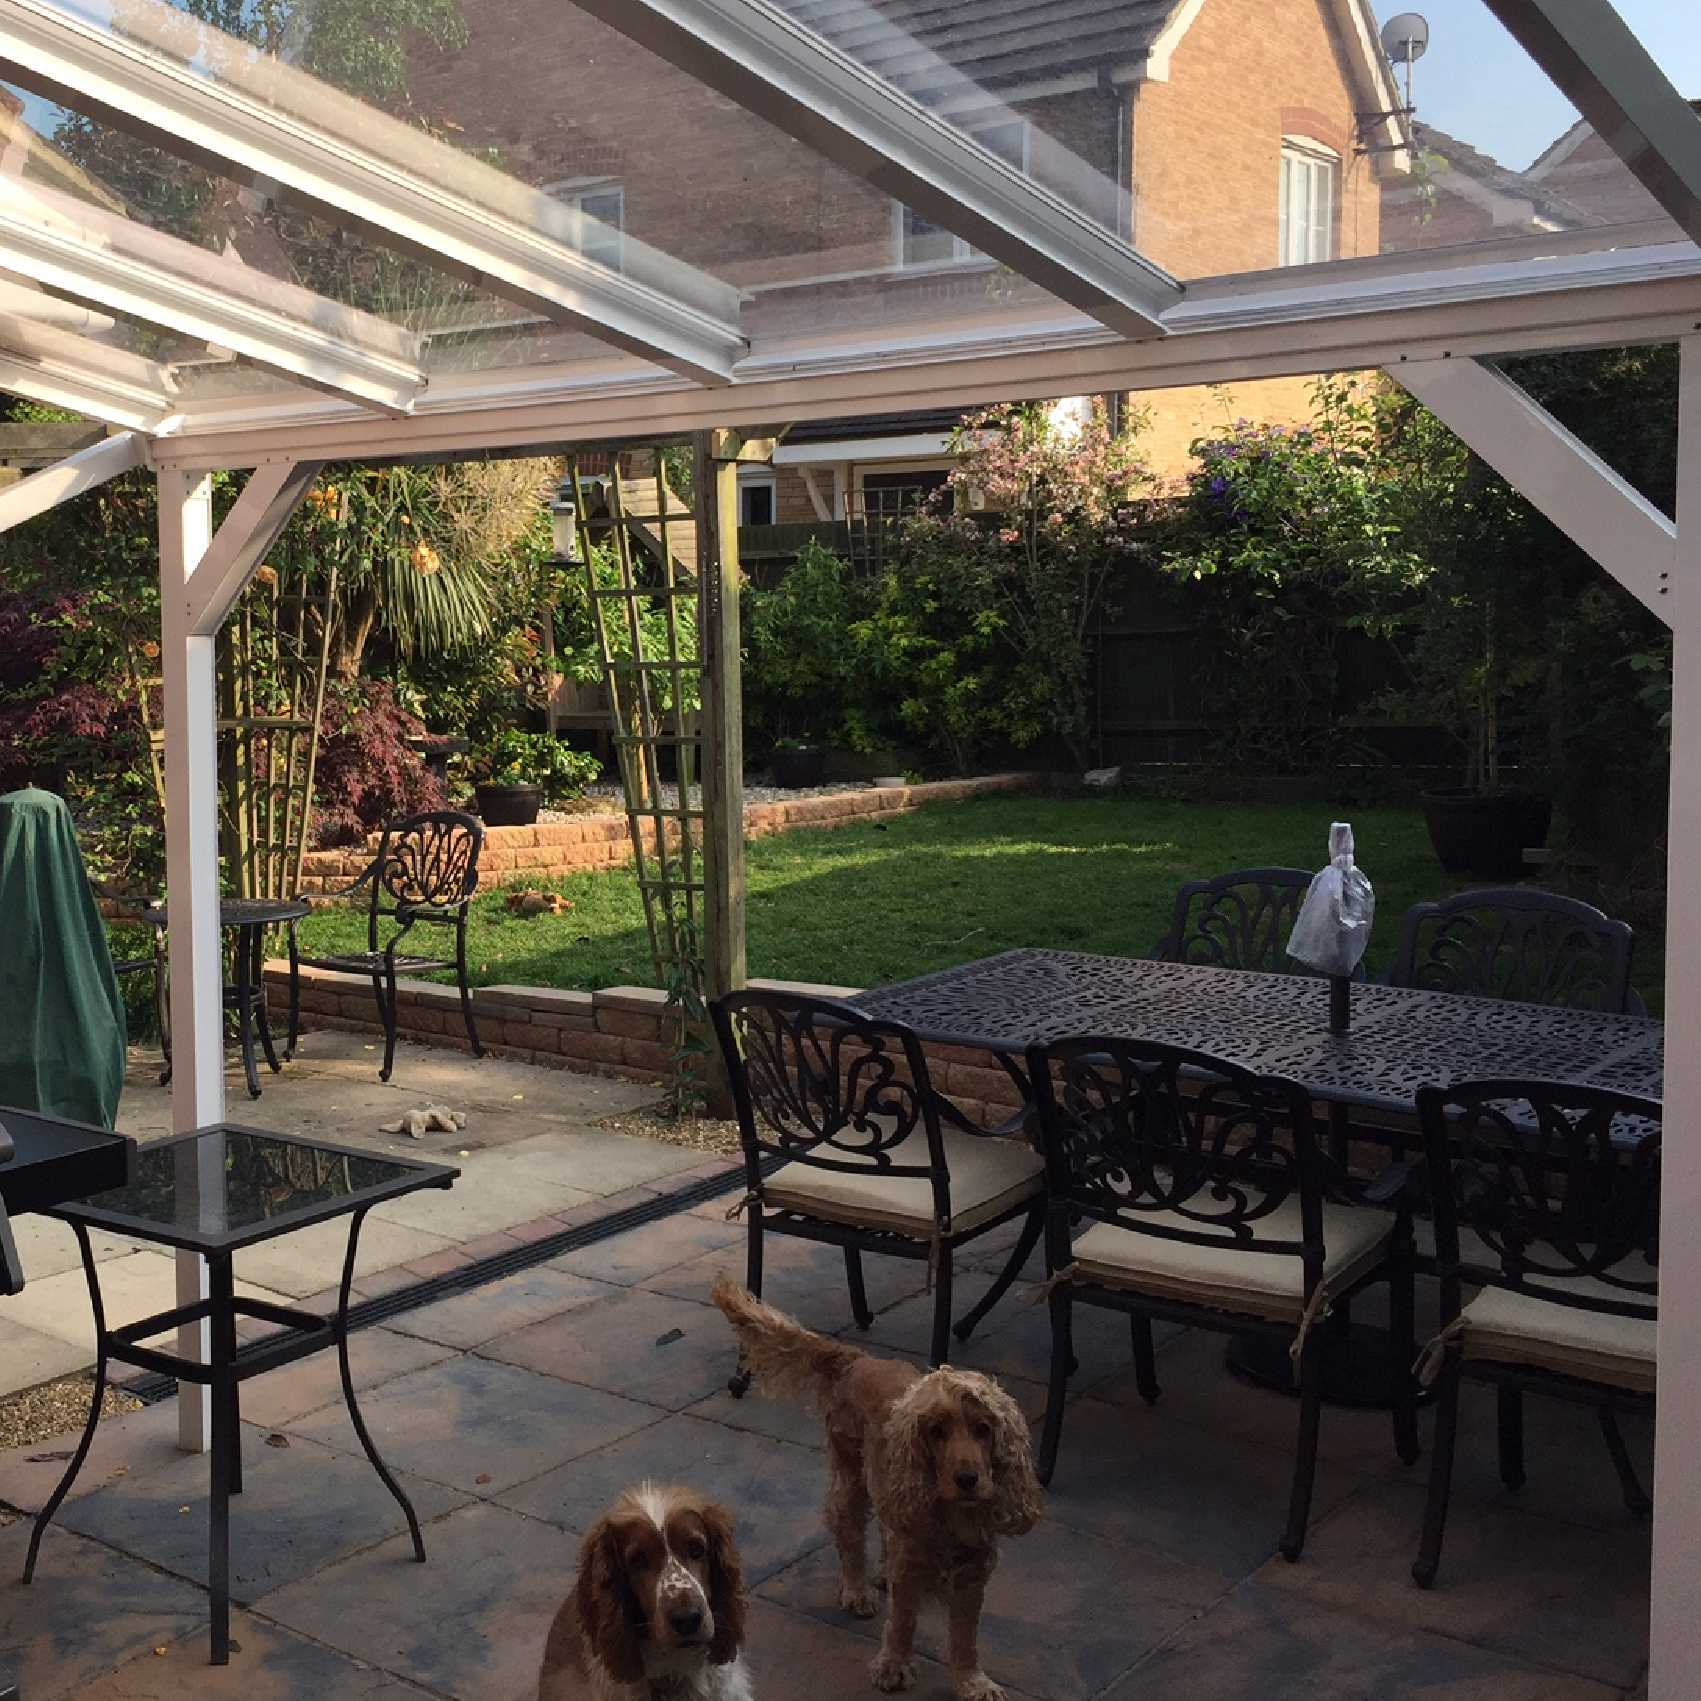 Affordable Omega Smart Lean-To Canopy UNGLAZED for 6mm Glazing - 5.6m (W) x 2.5m (P), (3) Supporting Posts